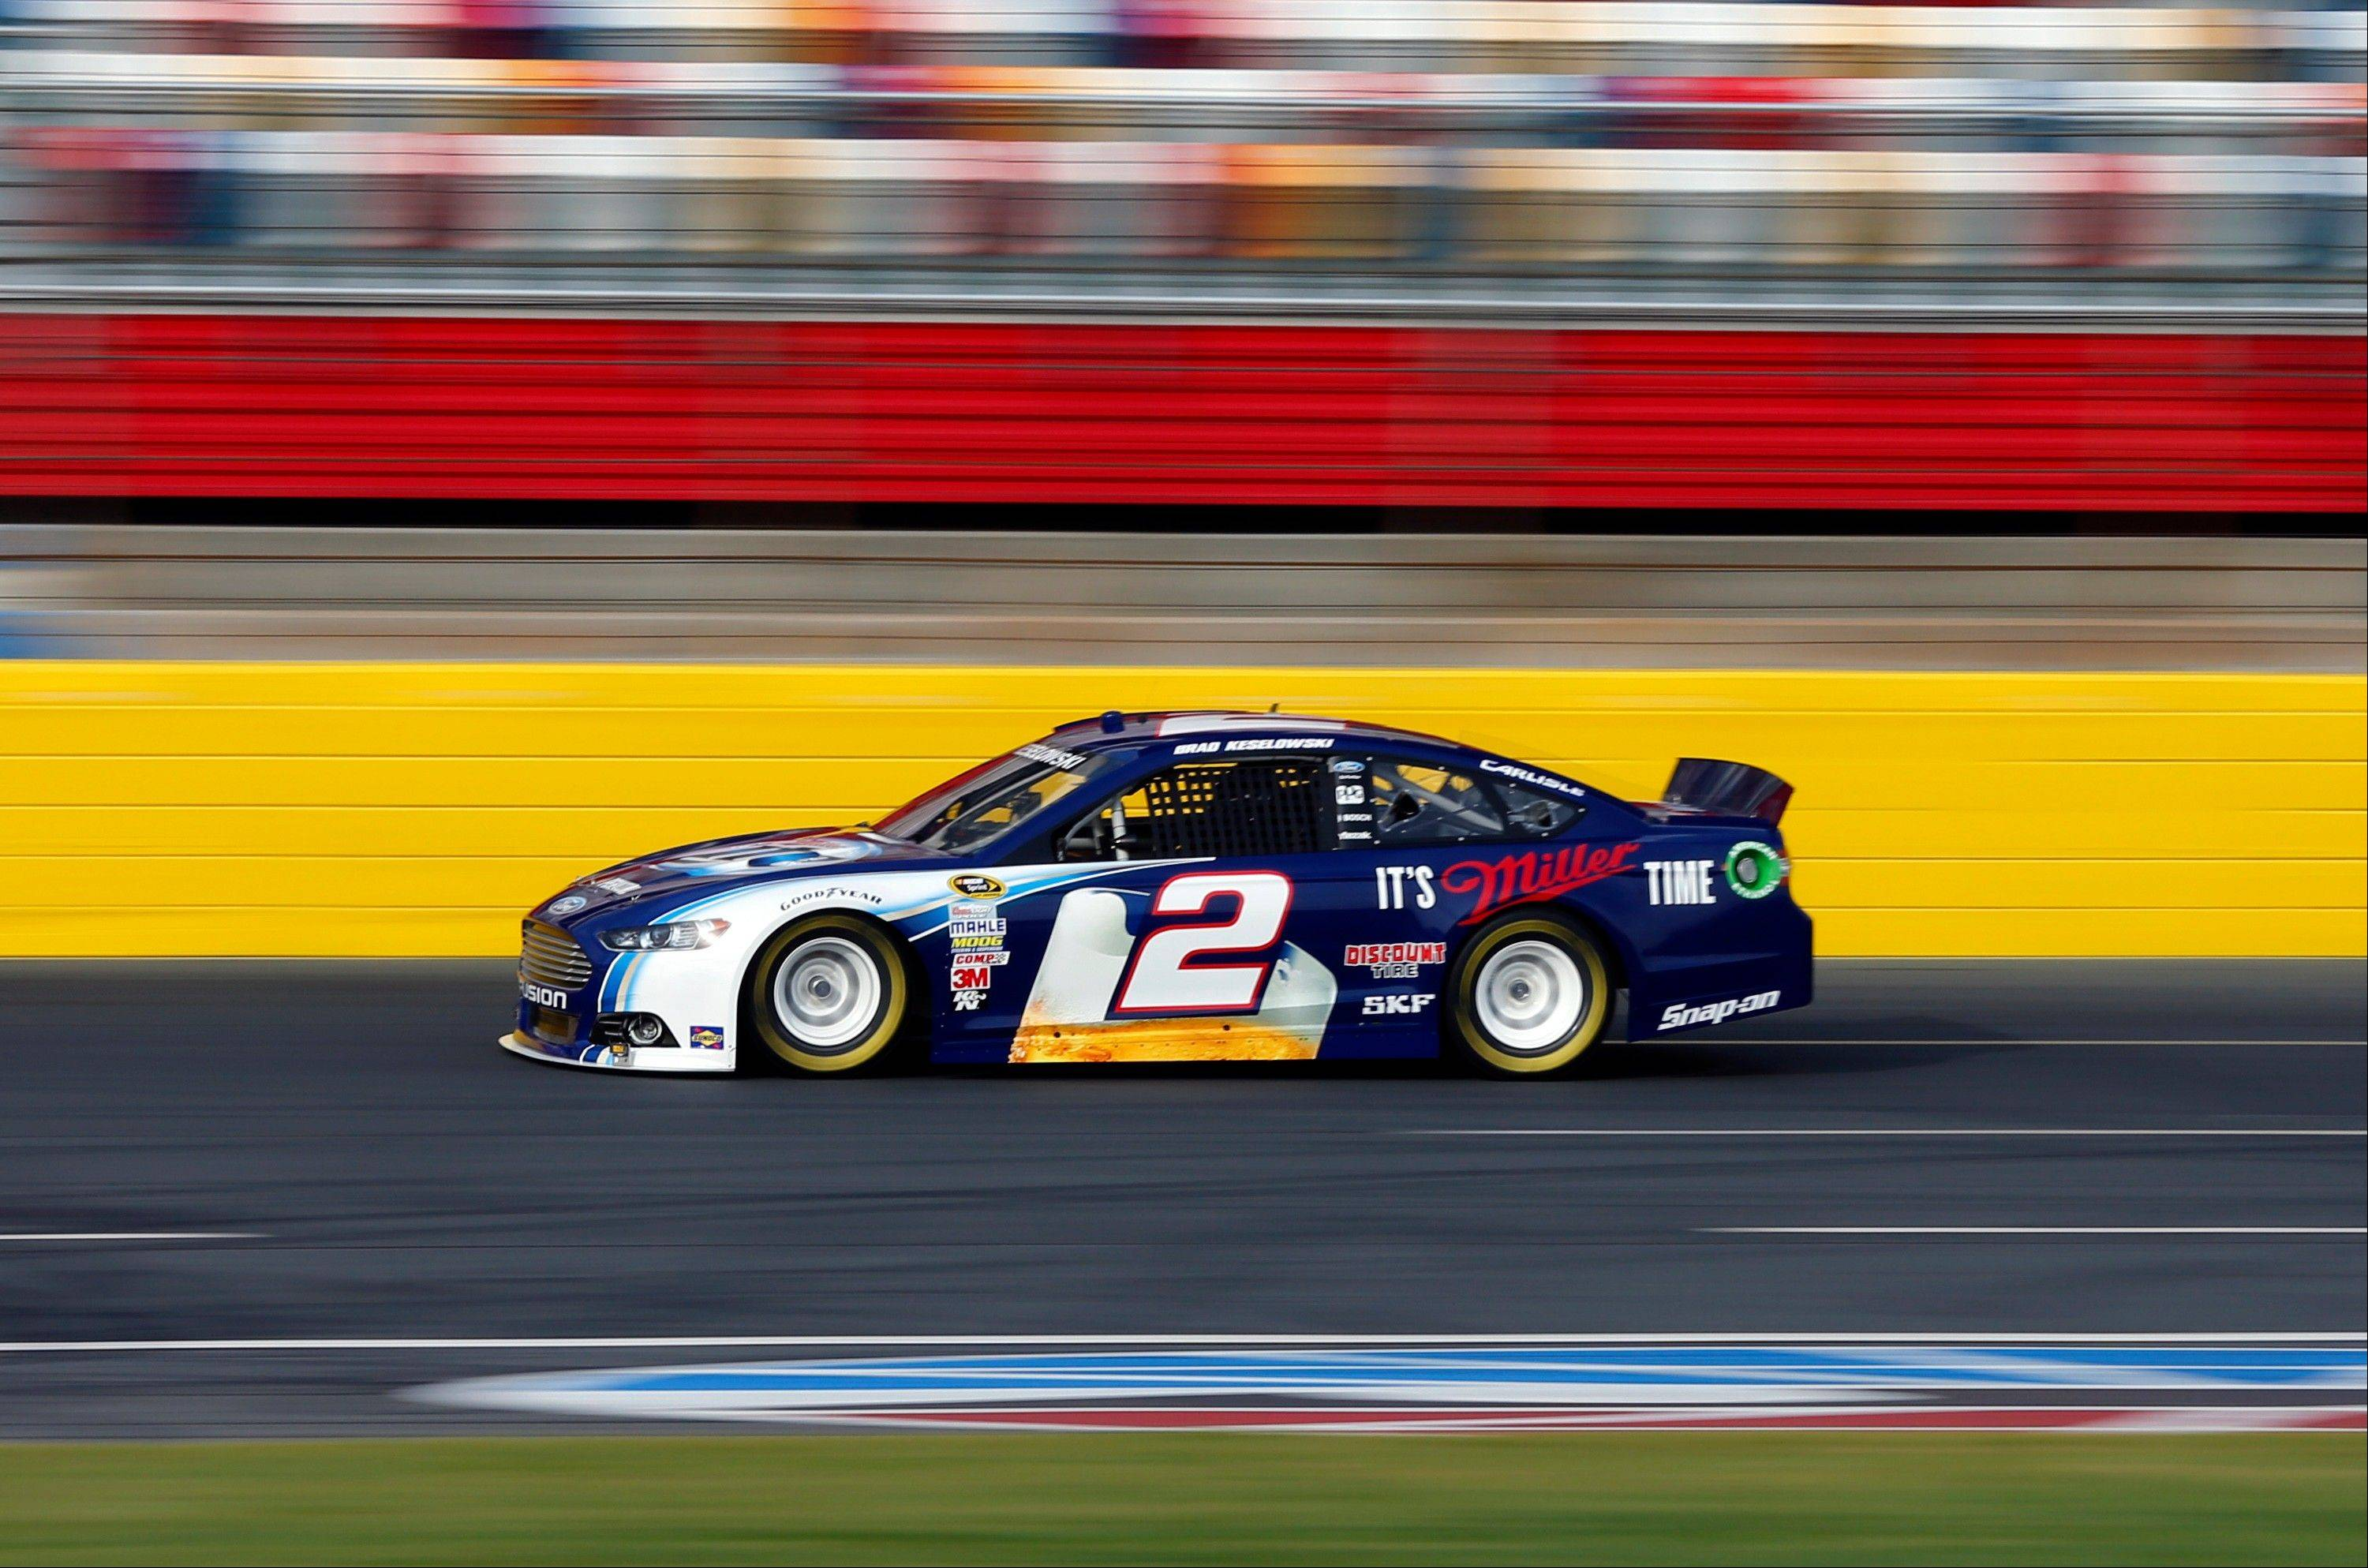 Brad Keselowski drives his car Tuesday during testing for the NASCAR Sprint Cup auto racing series at Charlotte Motor Speedway in Concord, N.C.